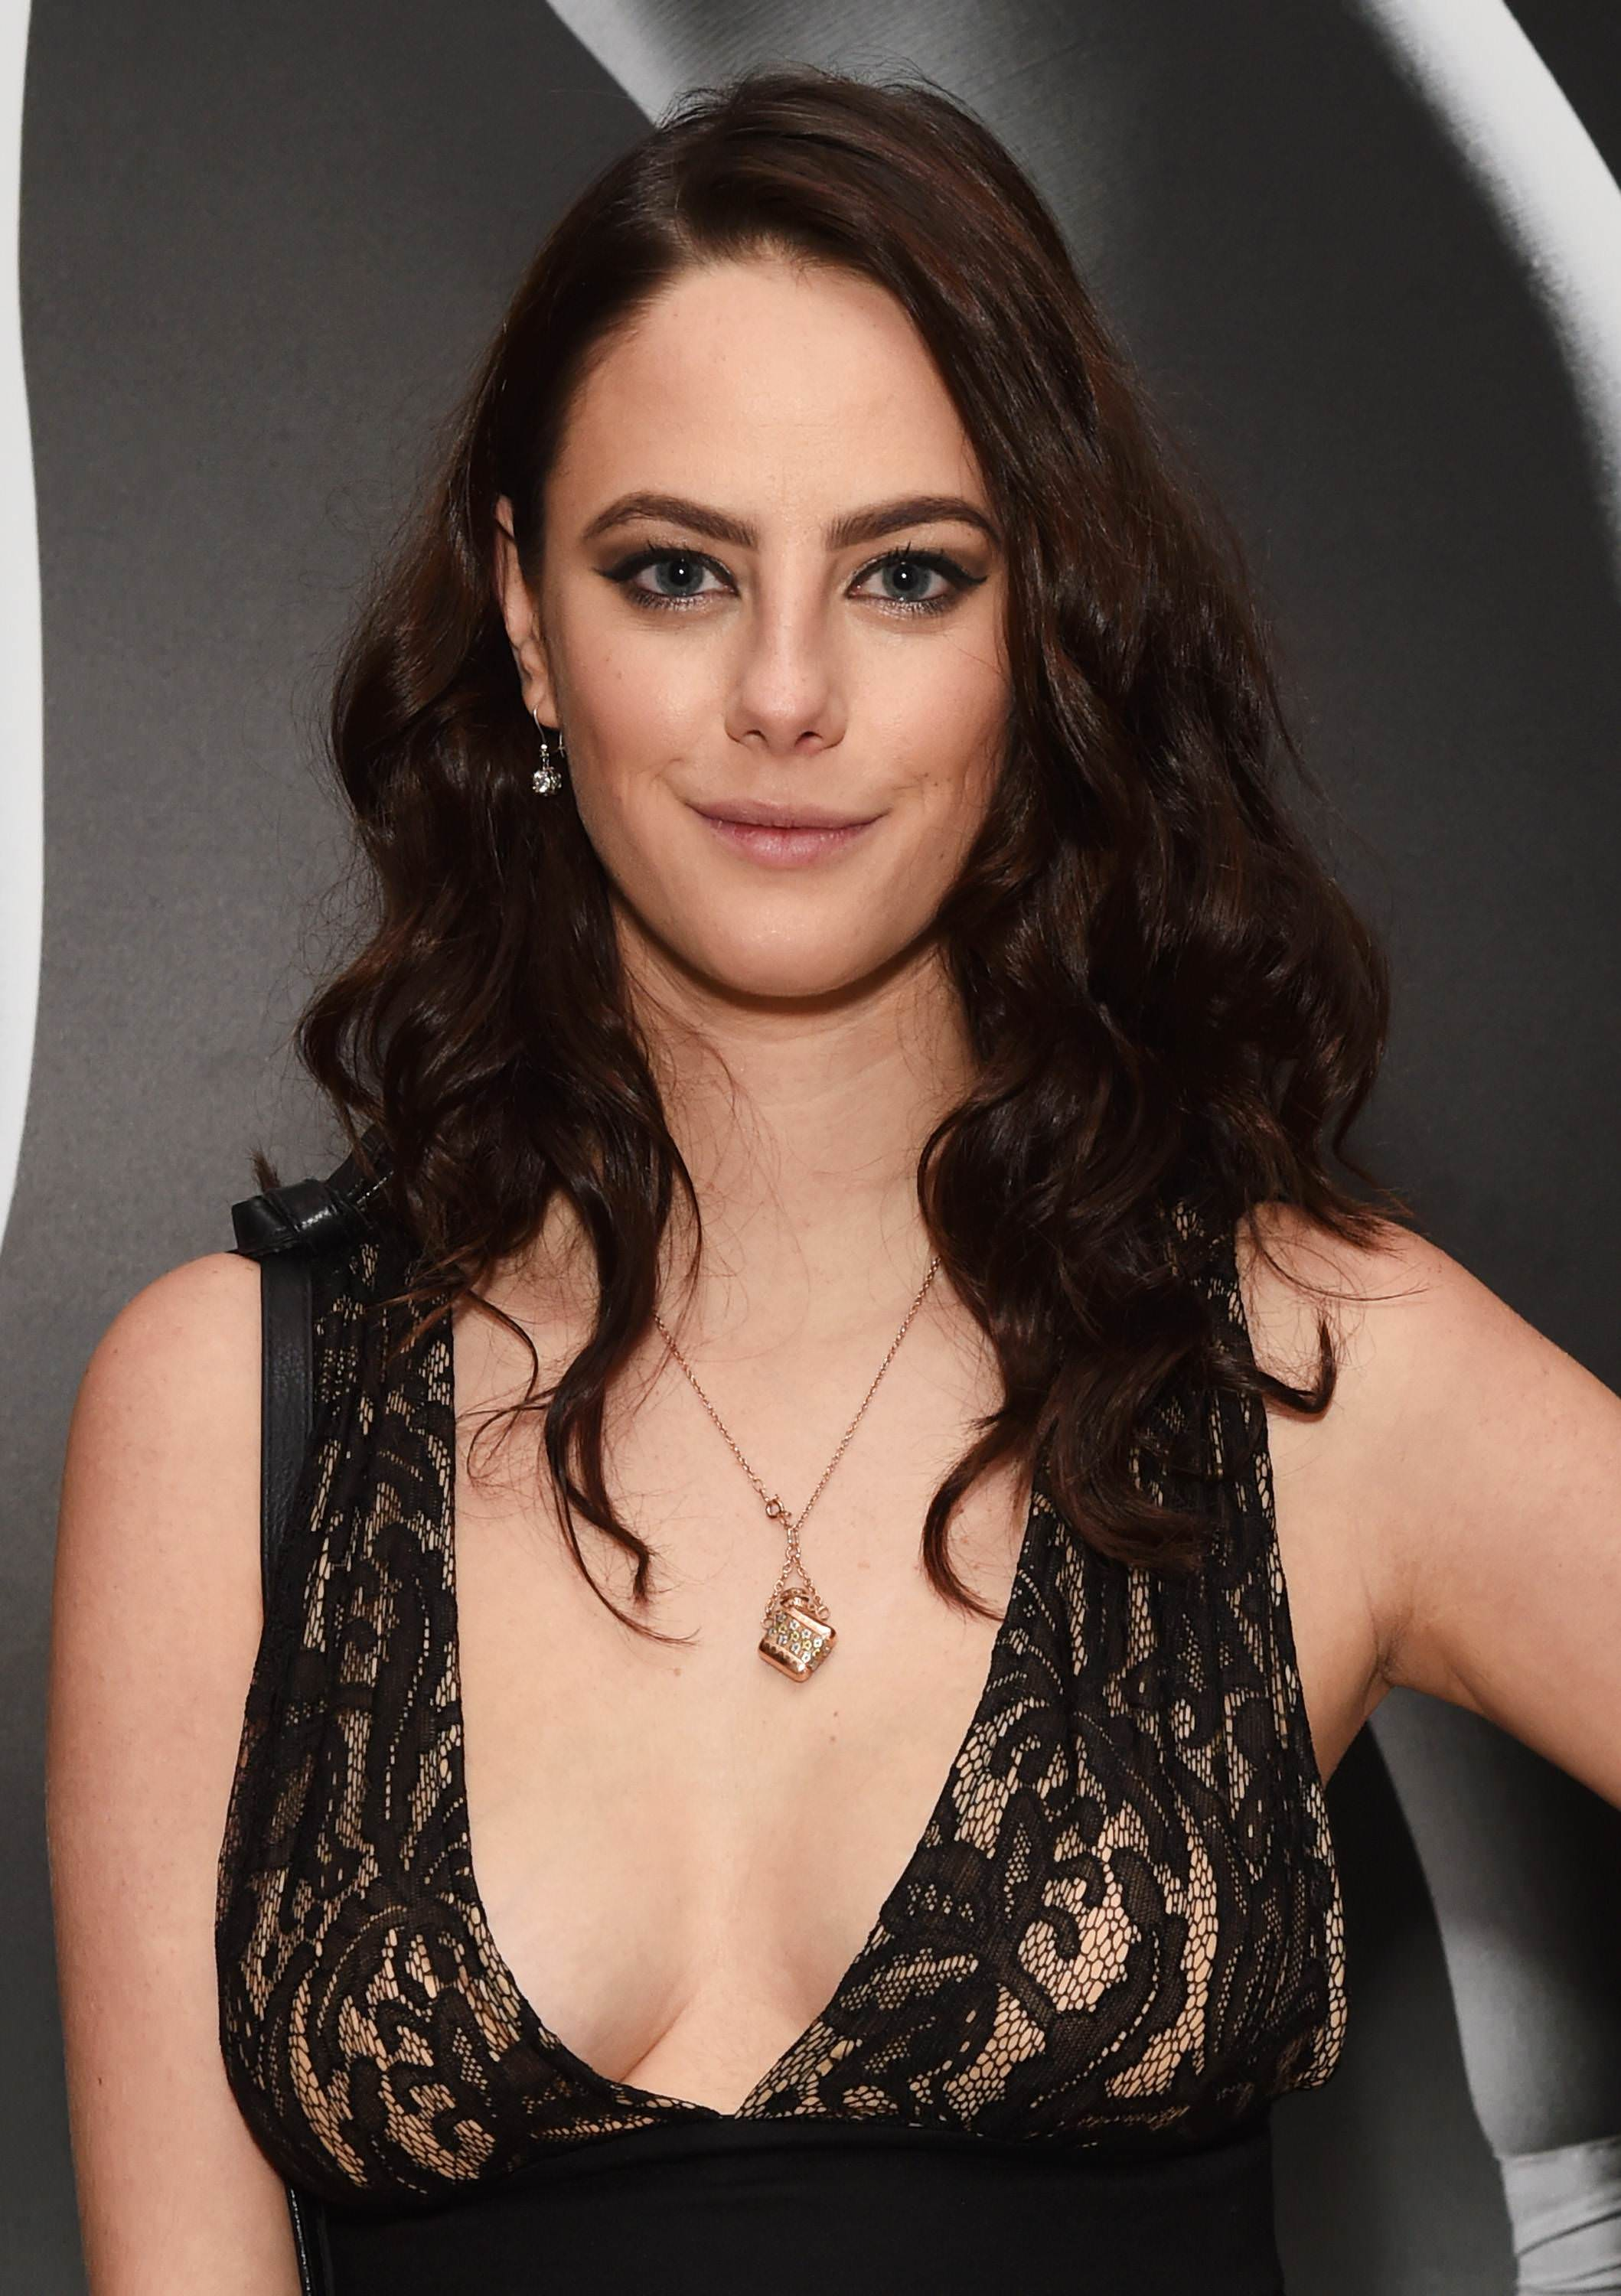 Bikini Kaya Scodelario nude (18 foto and video), Ass, Bikini, Twitter, panties 2018